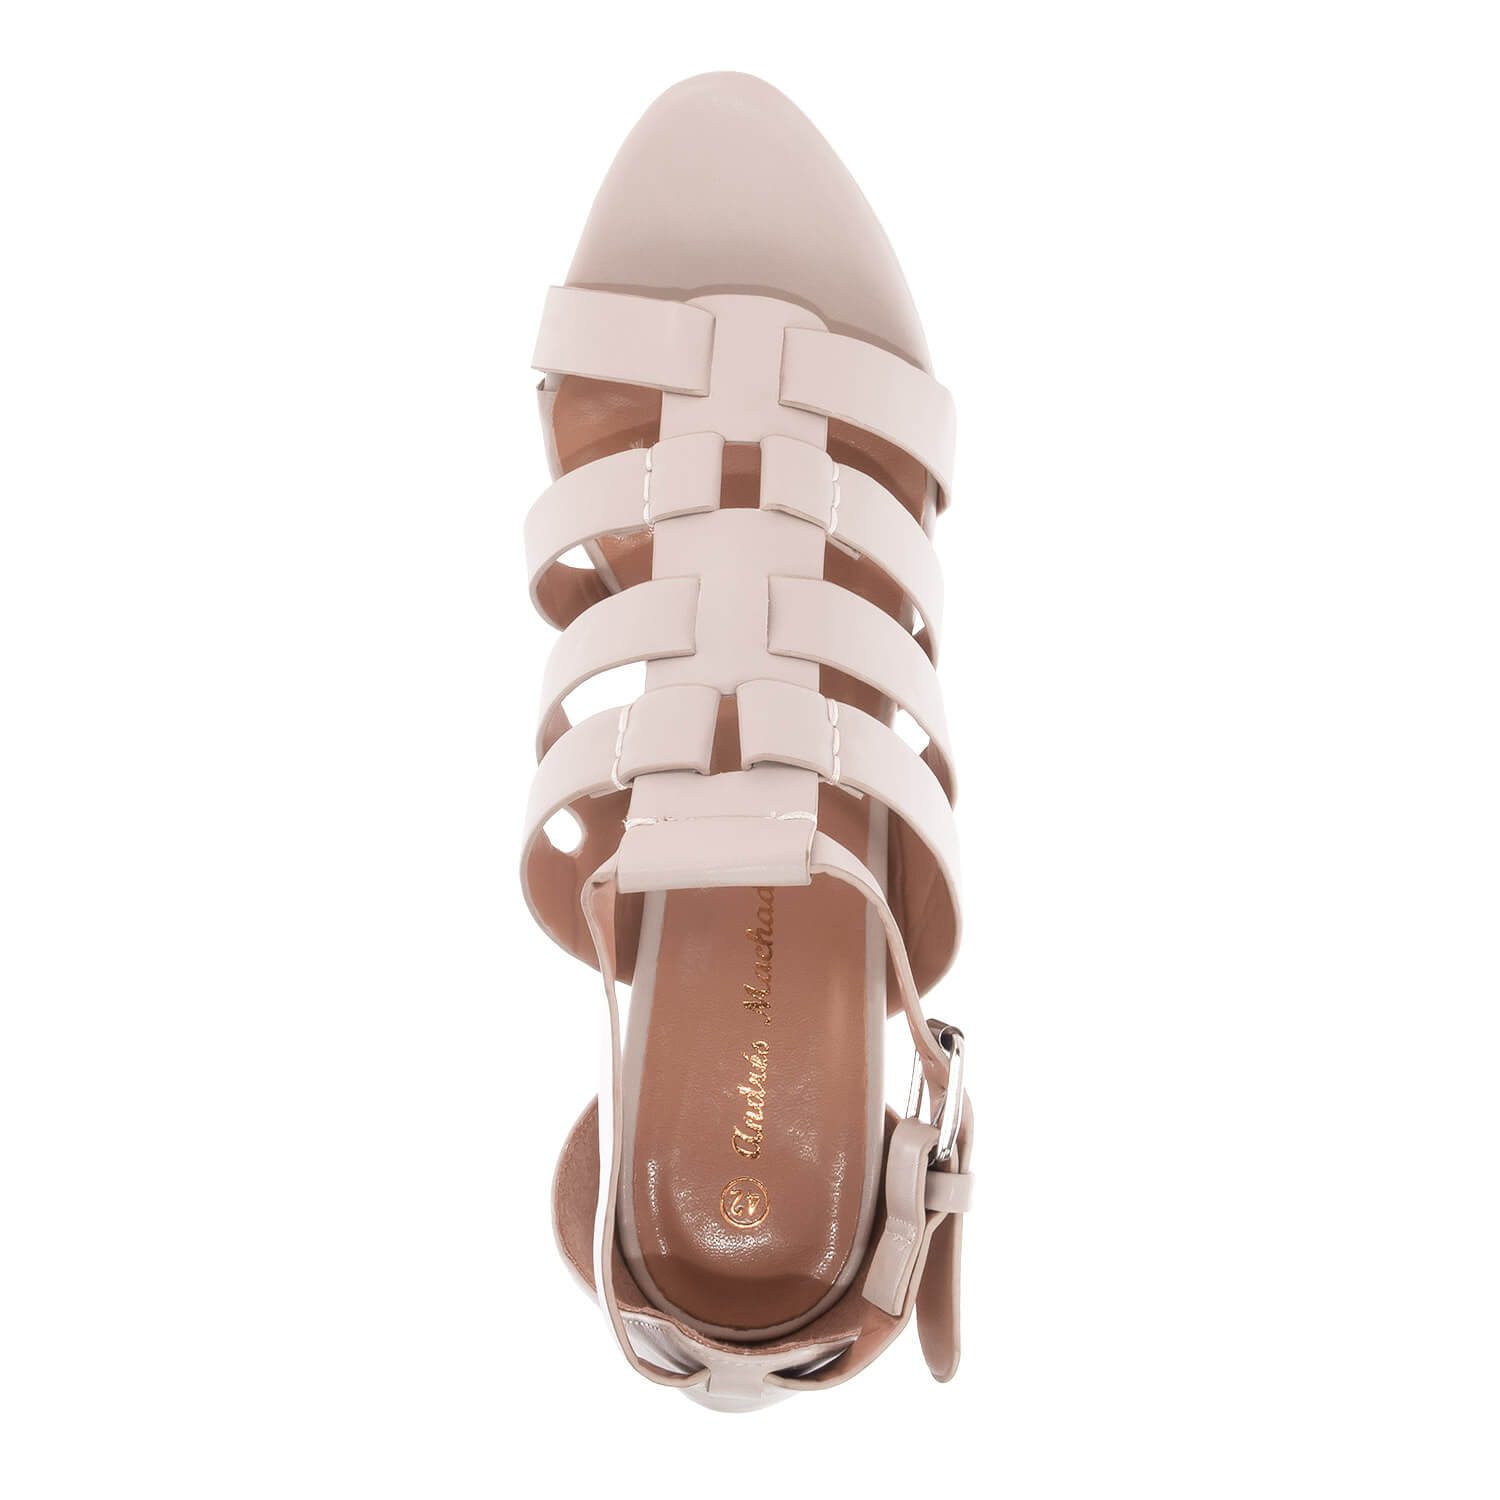 Sandalias Multi tiras en Soft color Beige